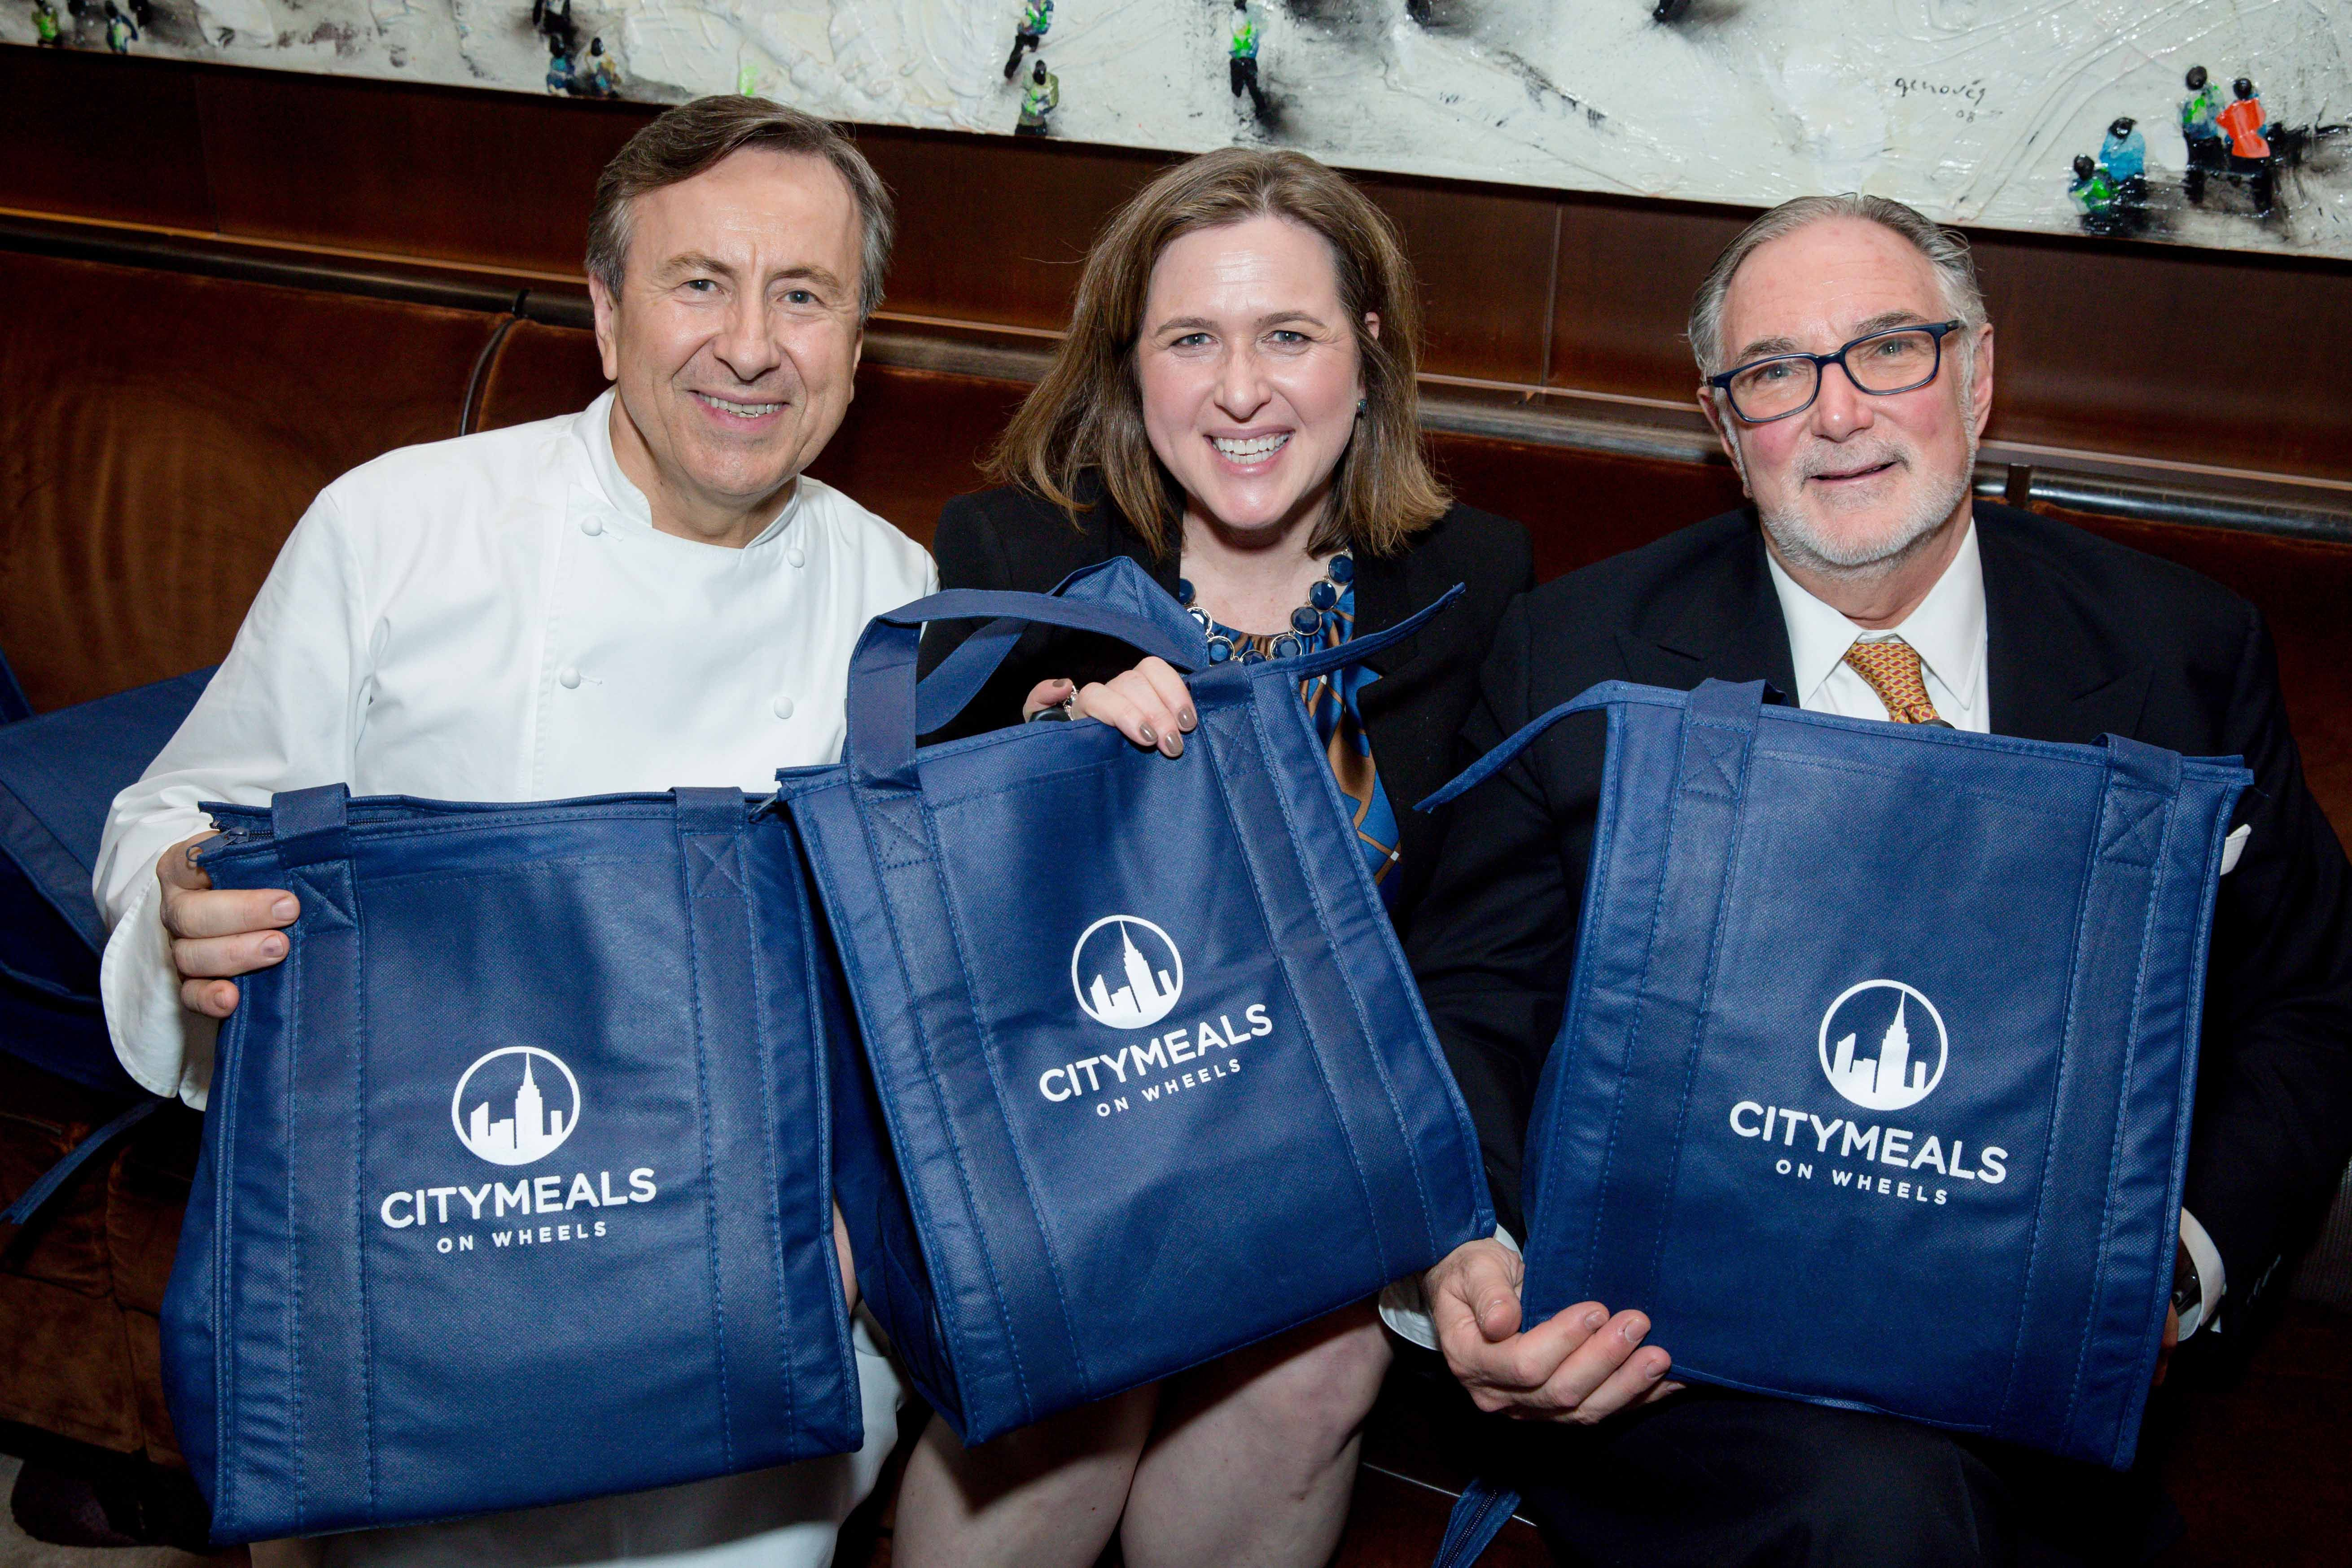 Inside the 22nd Annual Citymeals on Wheels Sunday Supper